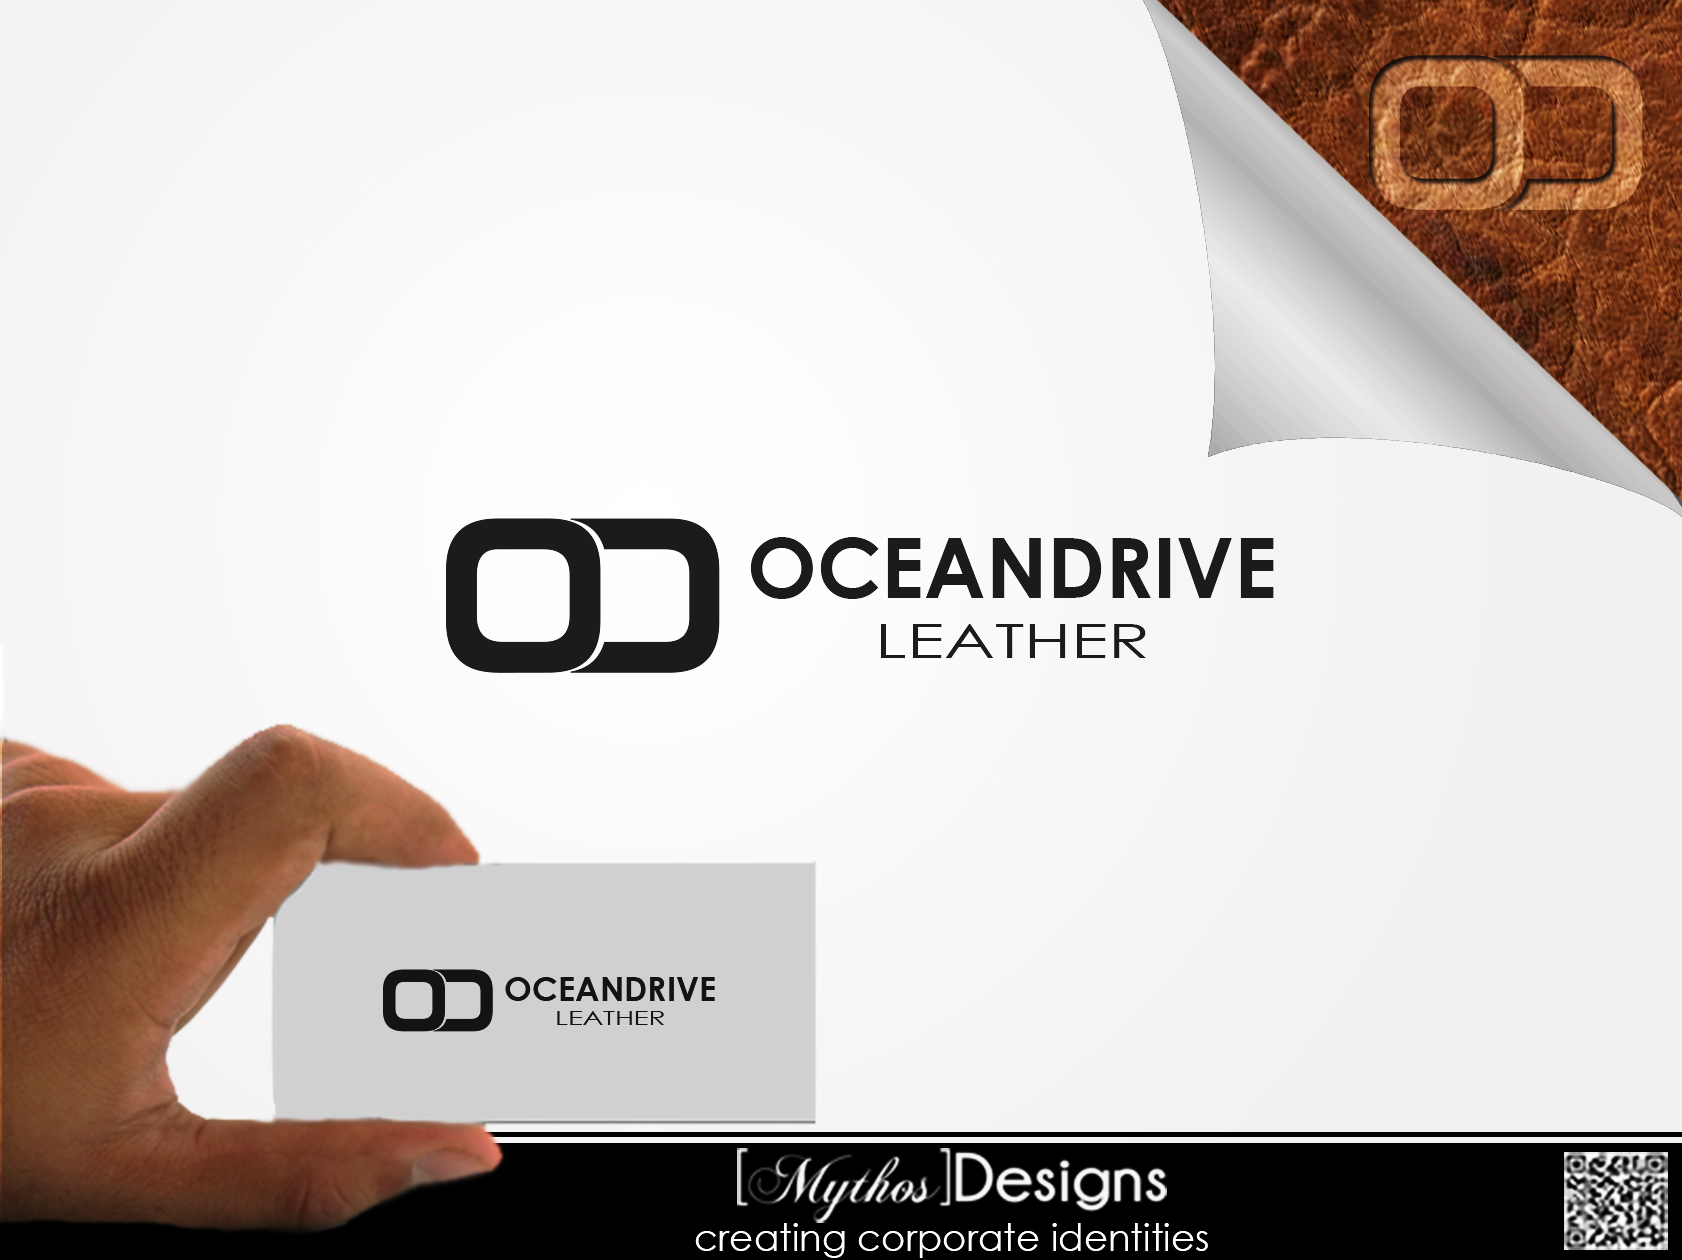 Logo Design by Mythos Designs - Entry No. 11 in the Logo Design Contest Captivating Logo Design for Oceandrive Leather.